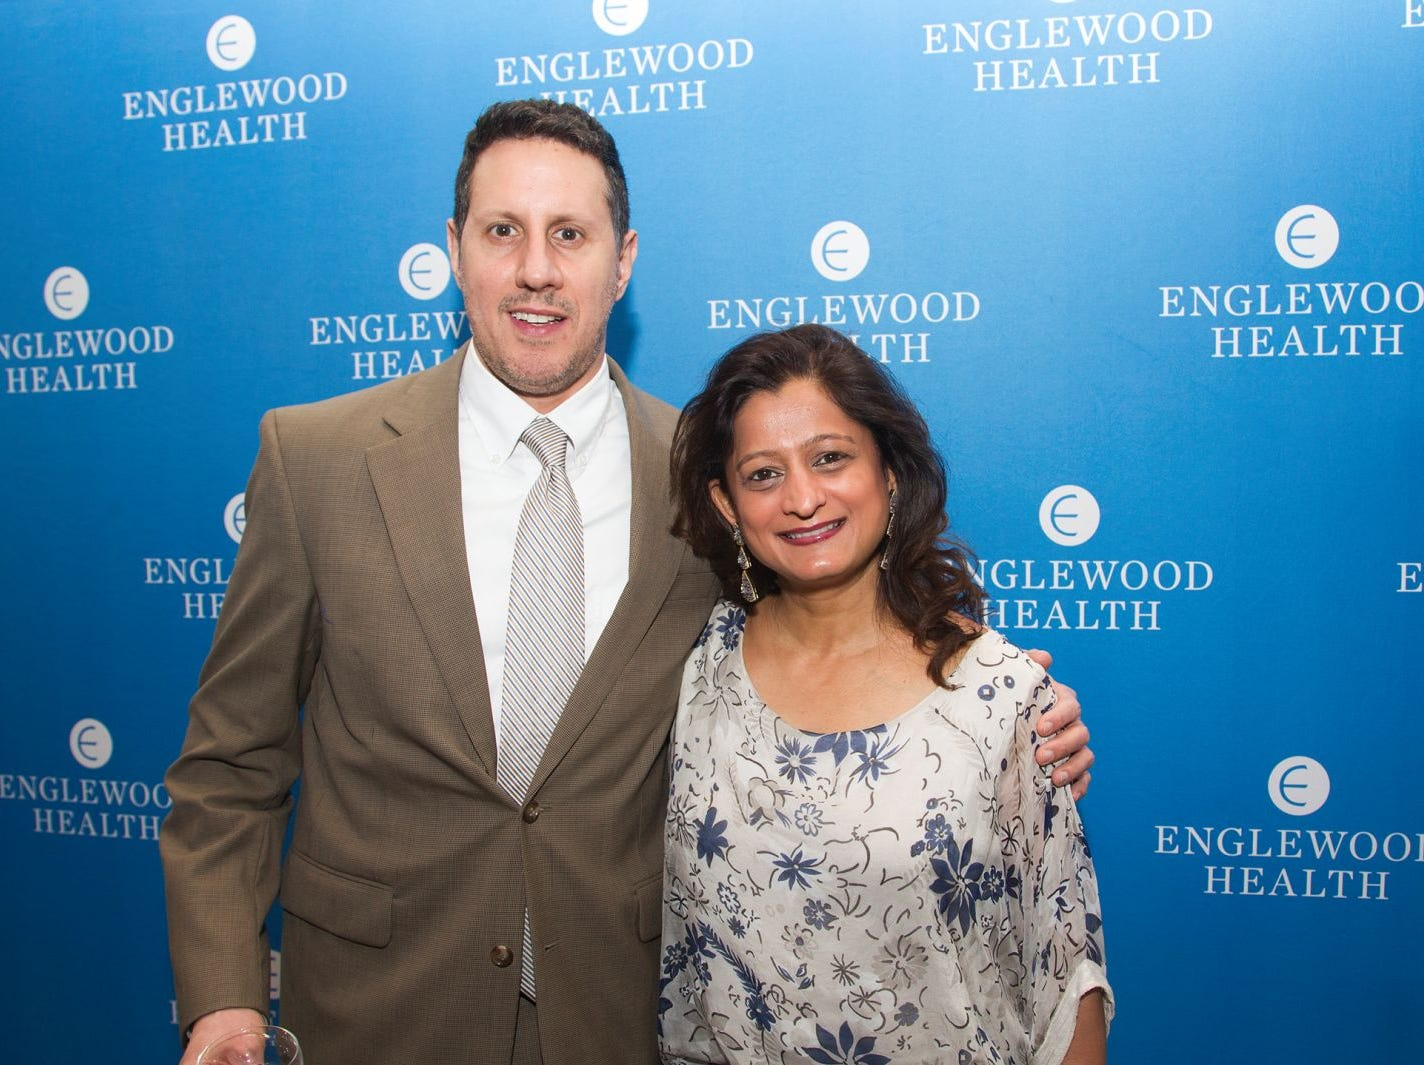 Dr. Philip Tasca., Dr. Binita Prajapati. Englewood Health held its annual Medical Staff Recognition Dinner at Rockliegh Country Club. 01/17/2019